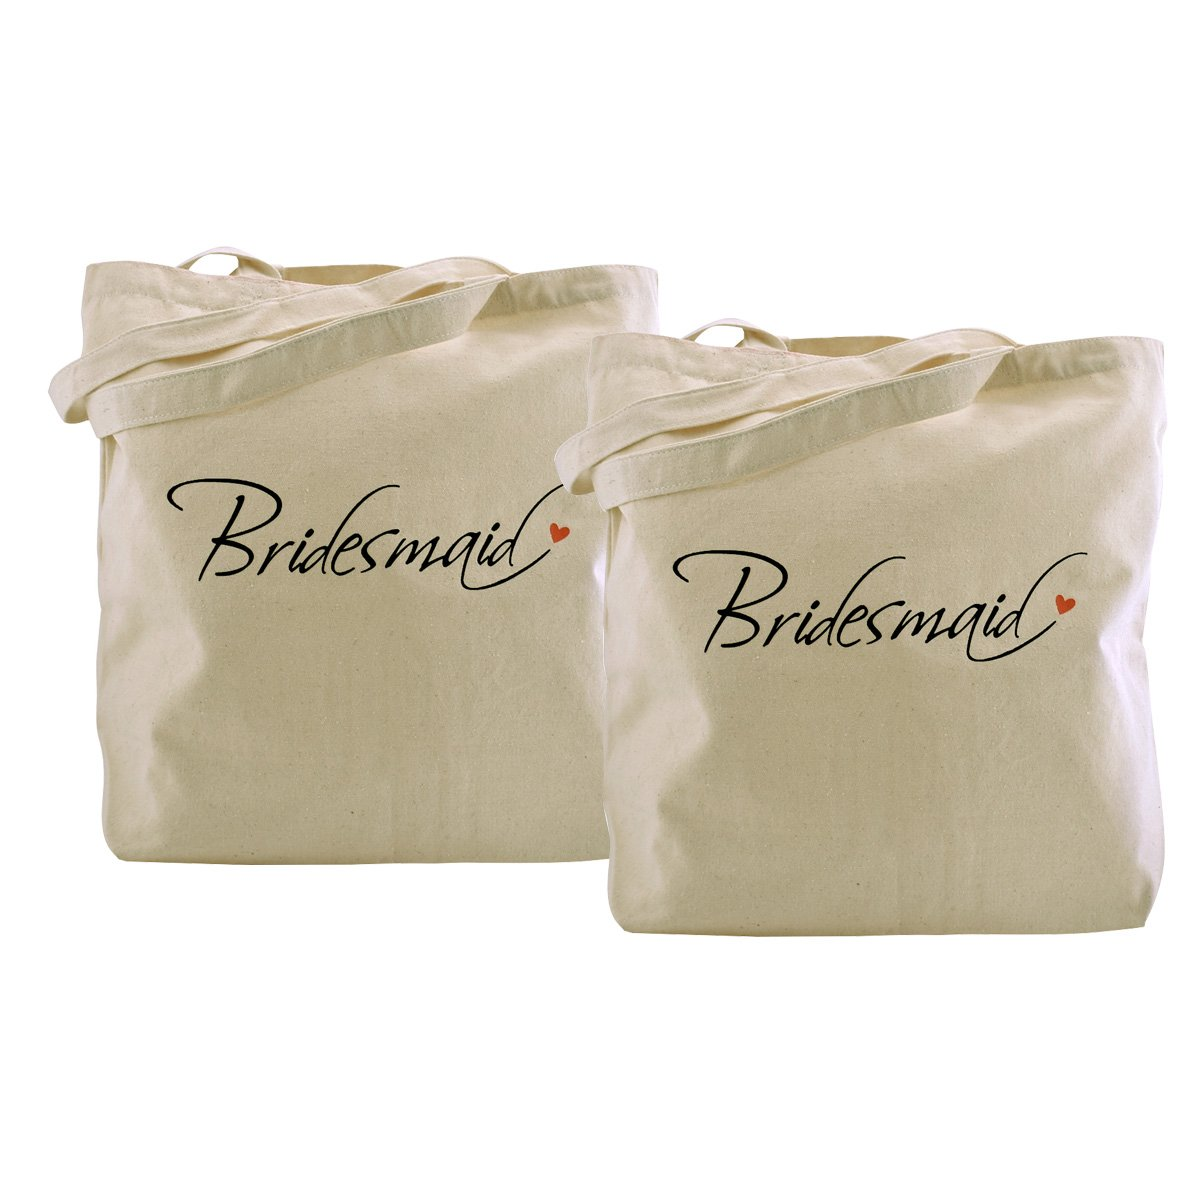 ElegantPark Bridesmaid Tote Bag Wedding Bridesmaid Gifts 100% Cotton 2 Pcs by ElegantPark